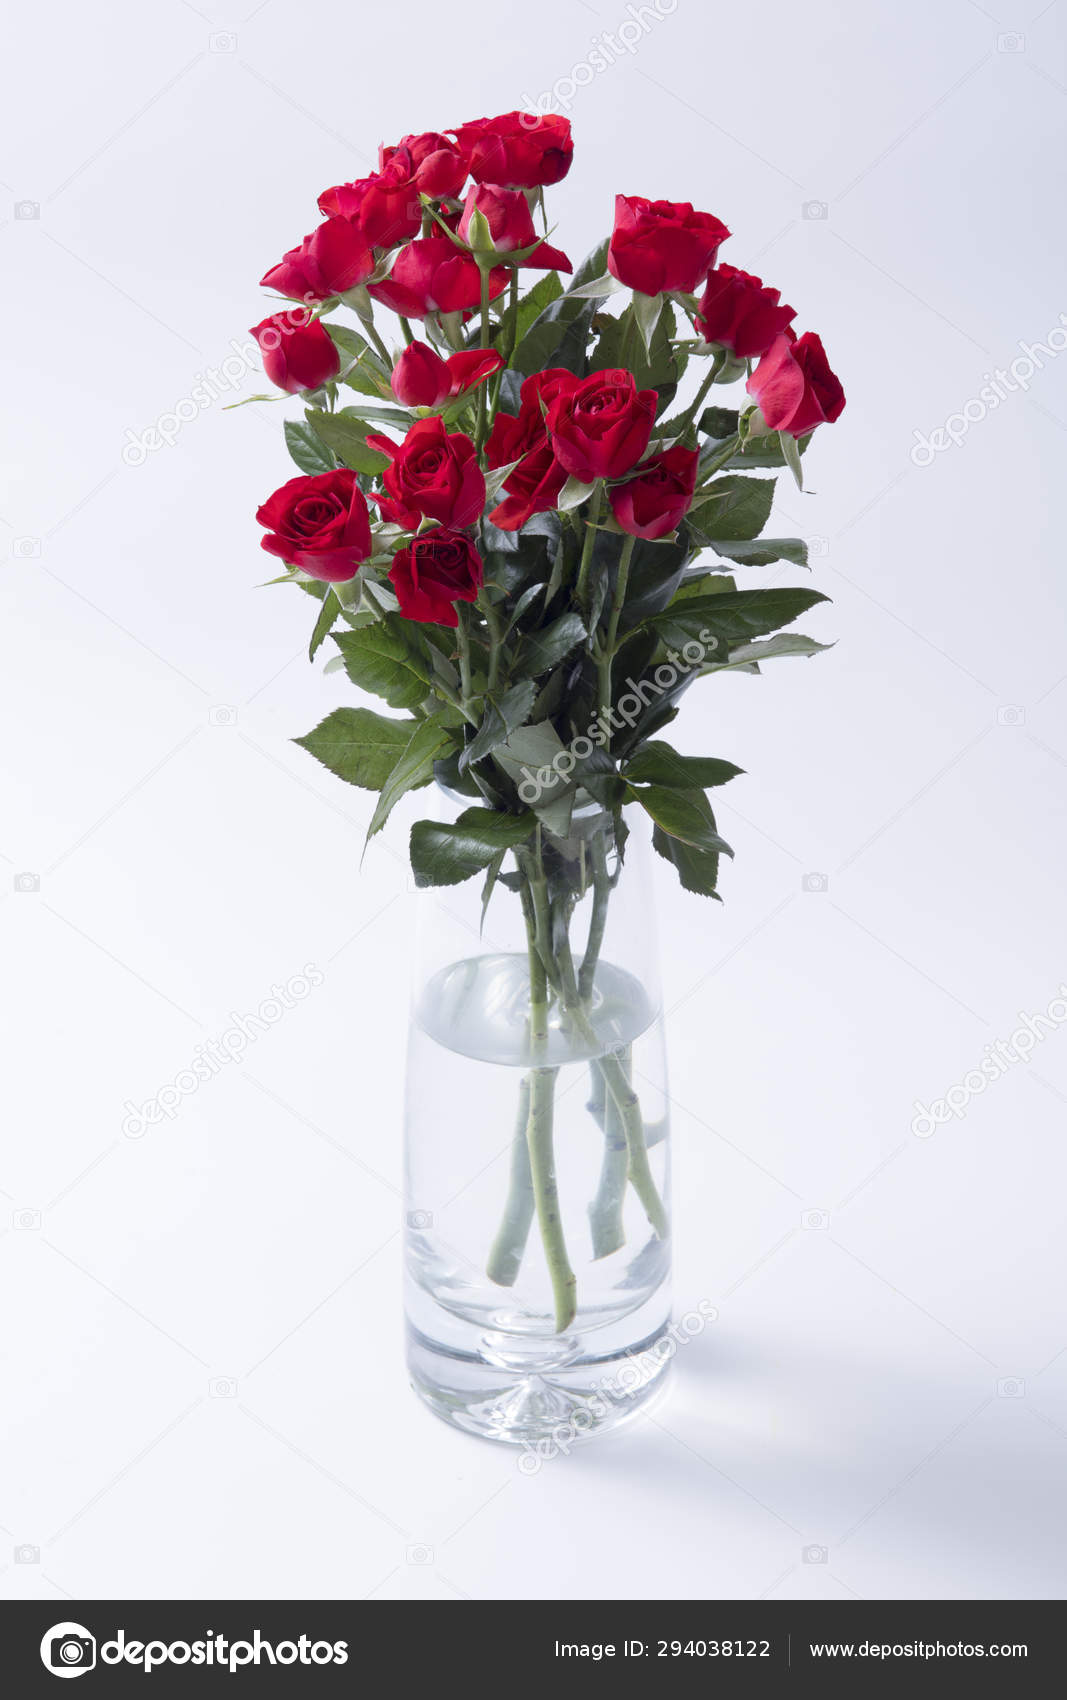 Beautiful Bouquet Red Roses Glass Vase Isolated White